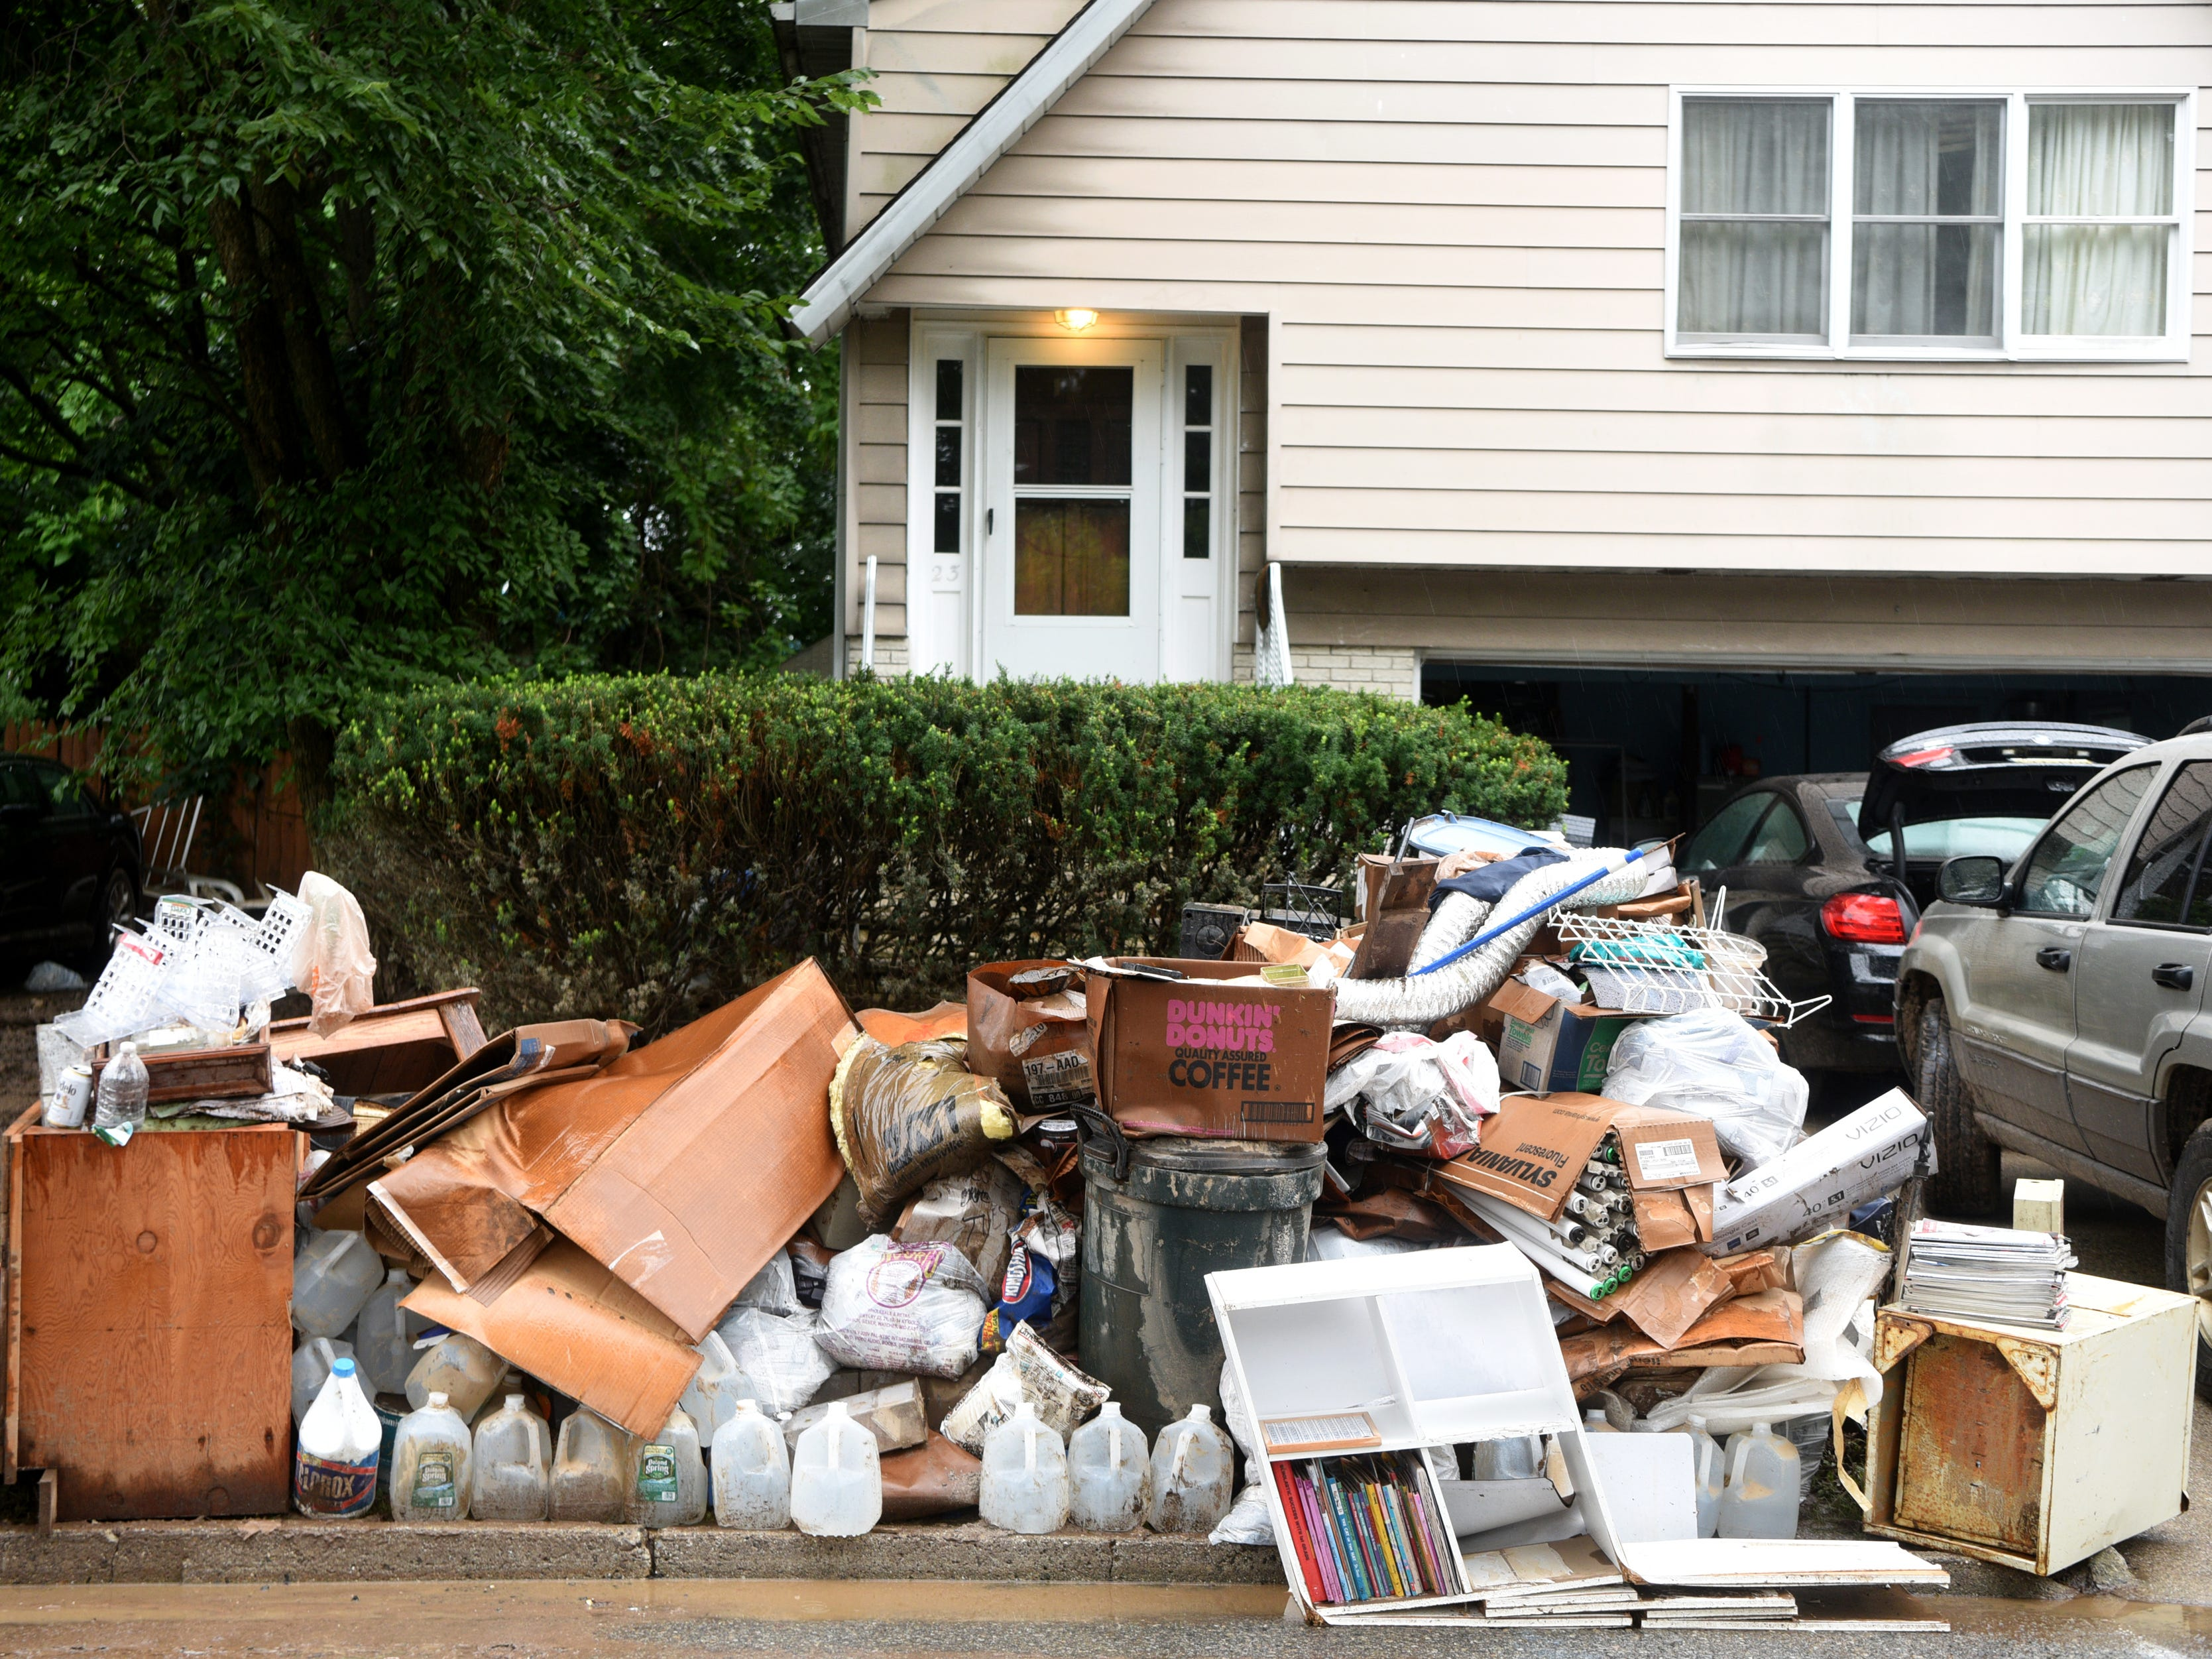 Items ruined in flooding are removed from a home on Cedar St. in Little Falls sit on the street on Monday, August 13, 2018. Flooding in the neighborhood near the Peckman River on Saturday is being called the worst since Hurricane Floyd.